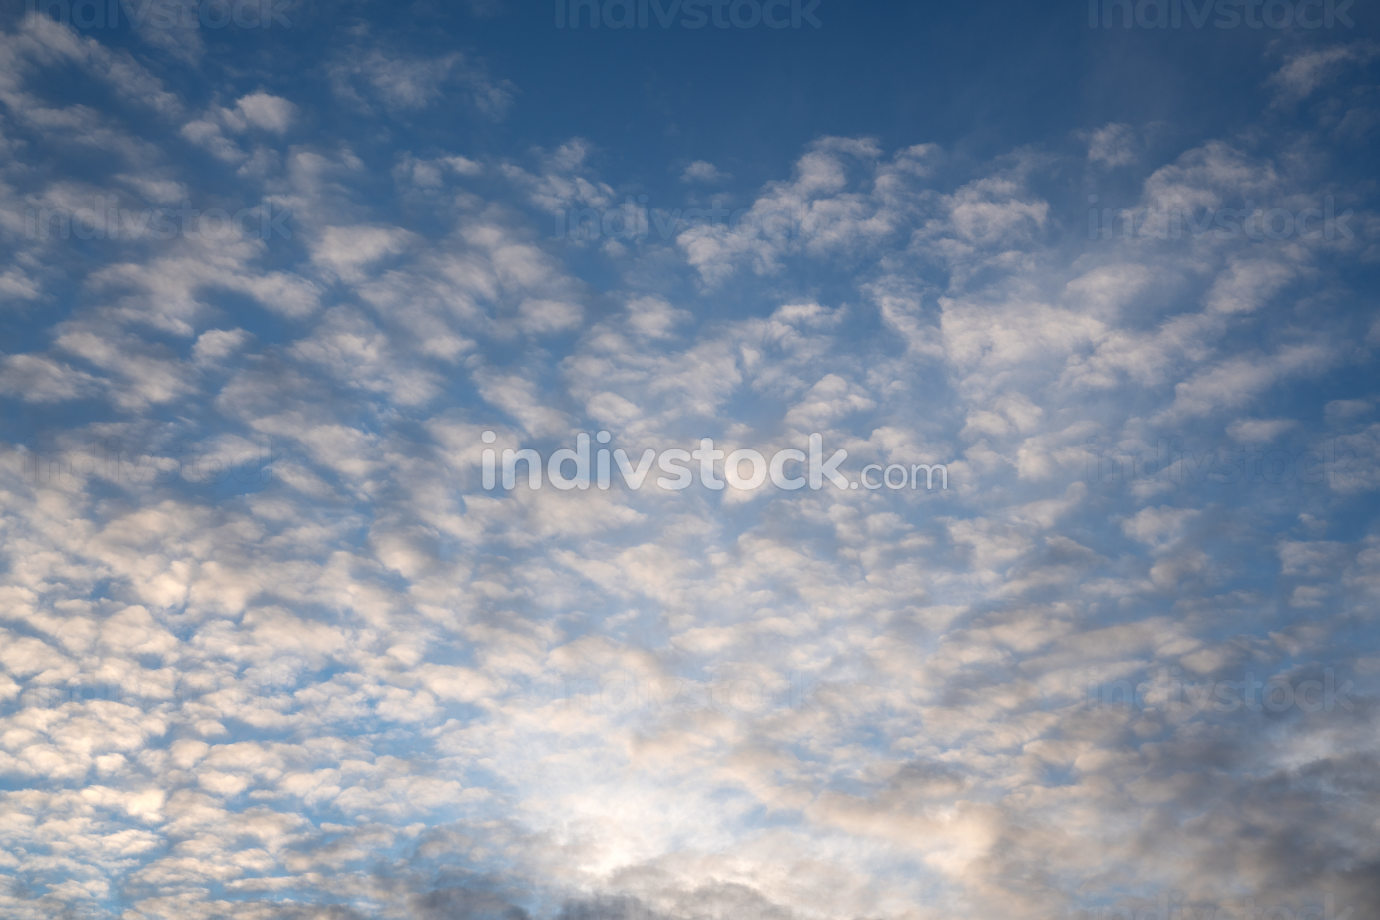 Sunny sky with feathery clouds